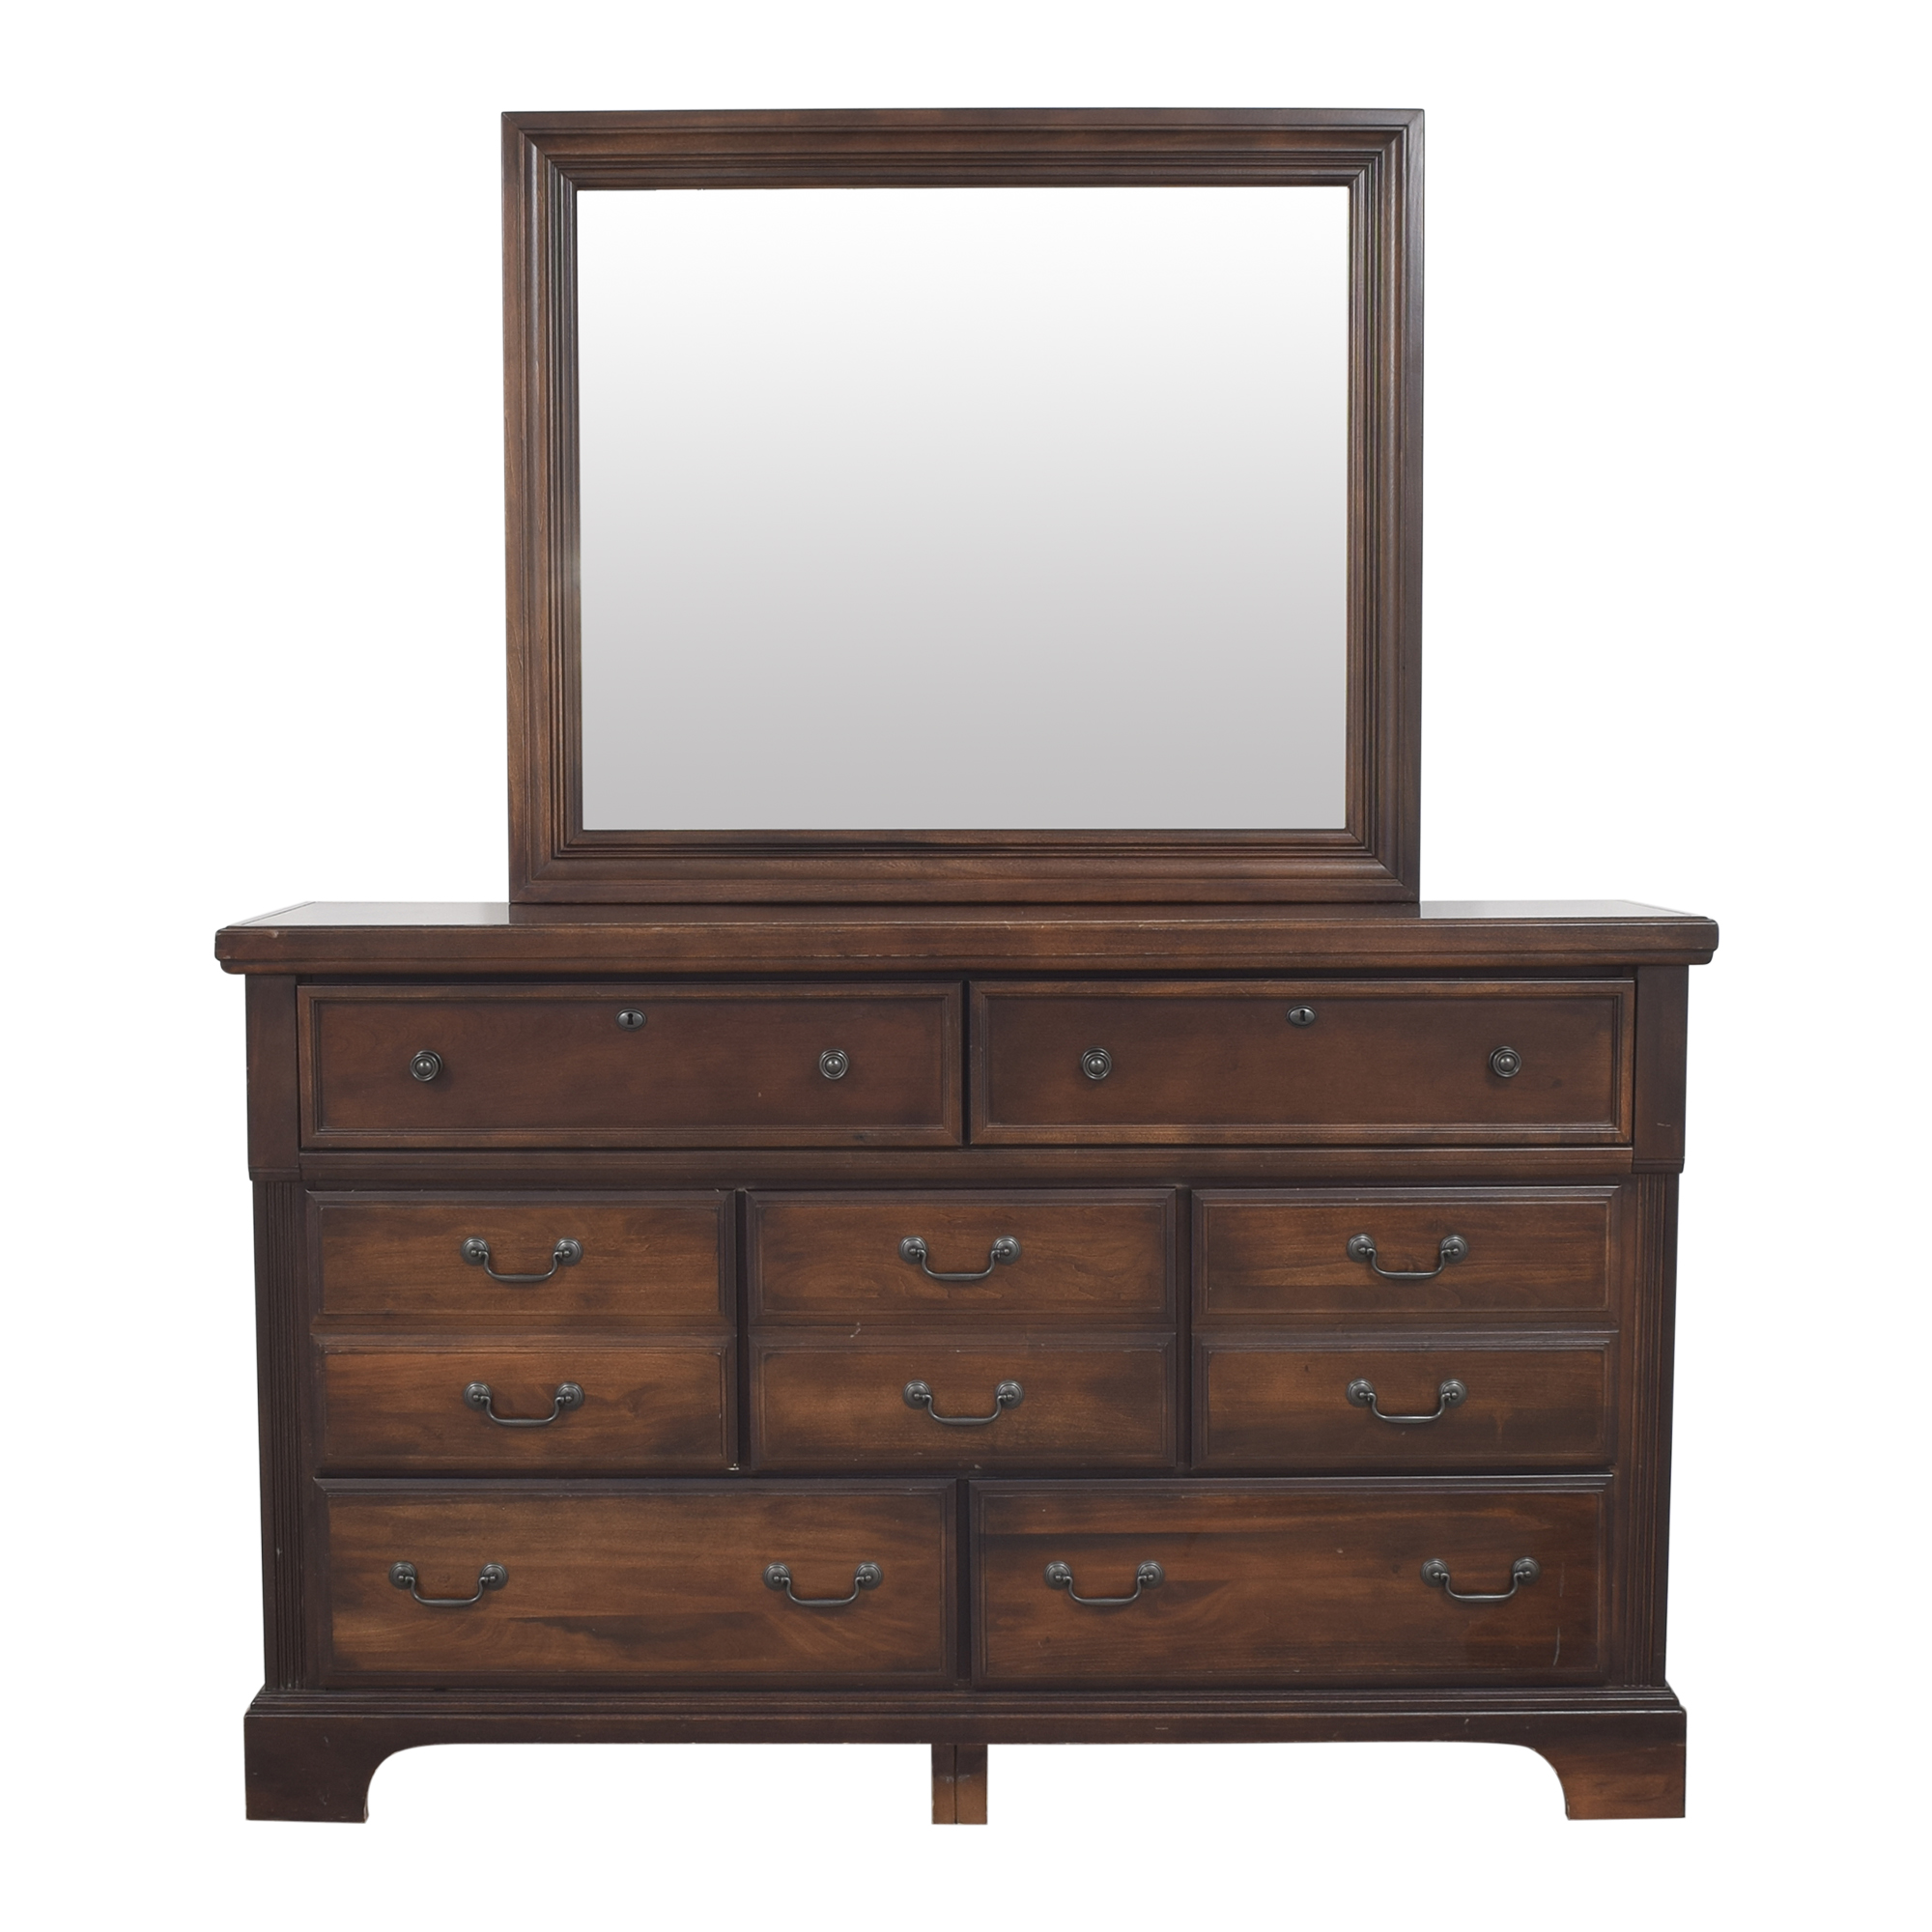 Vaughan-Bassett Vaughan-Bassett Triple Dresser with Mirror ct